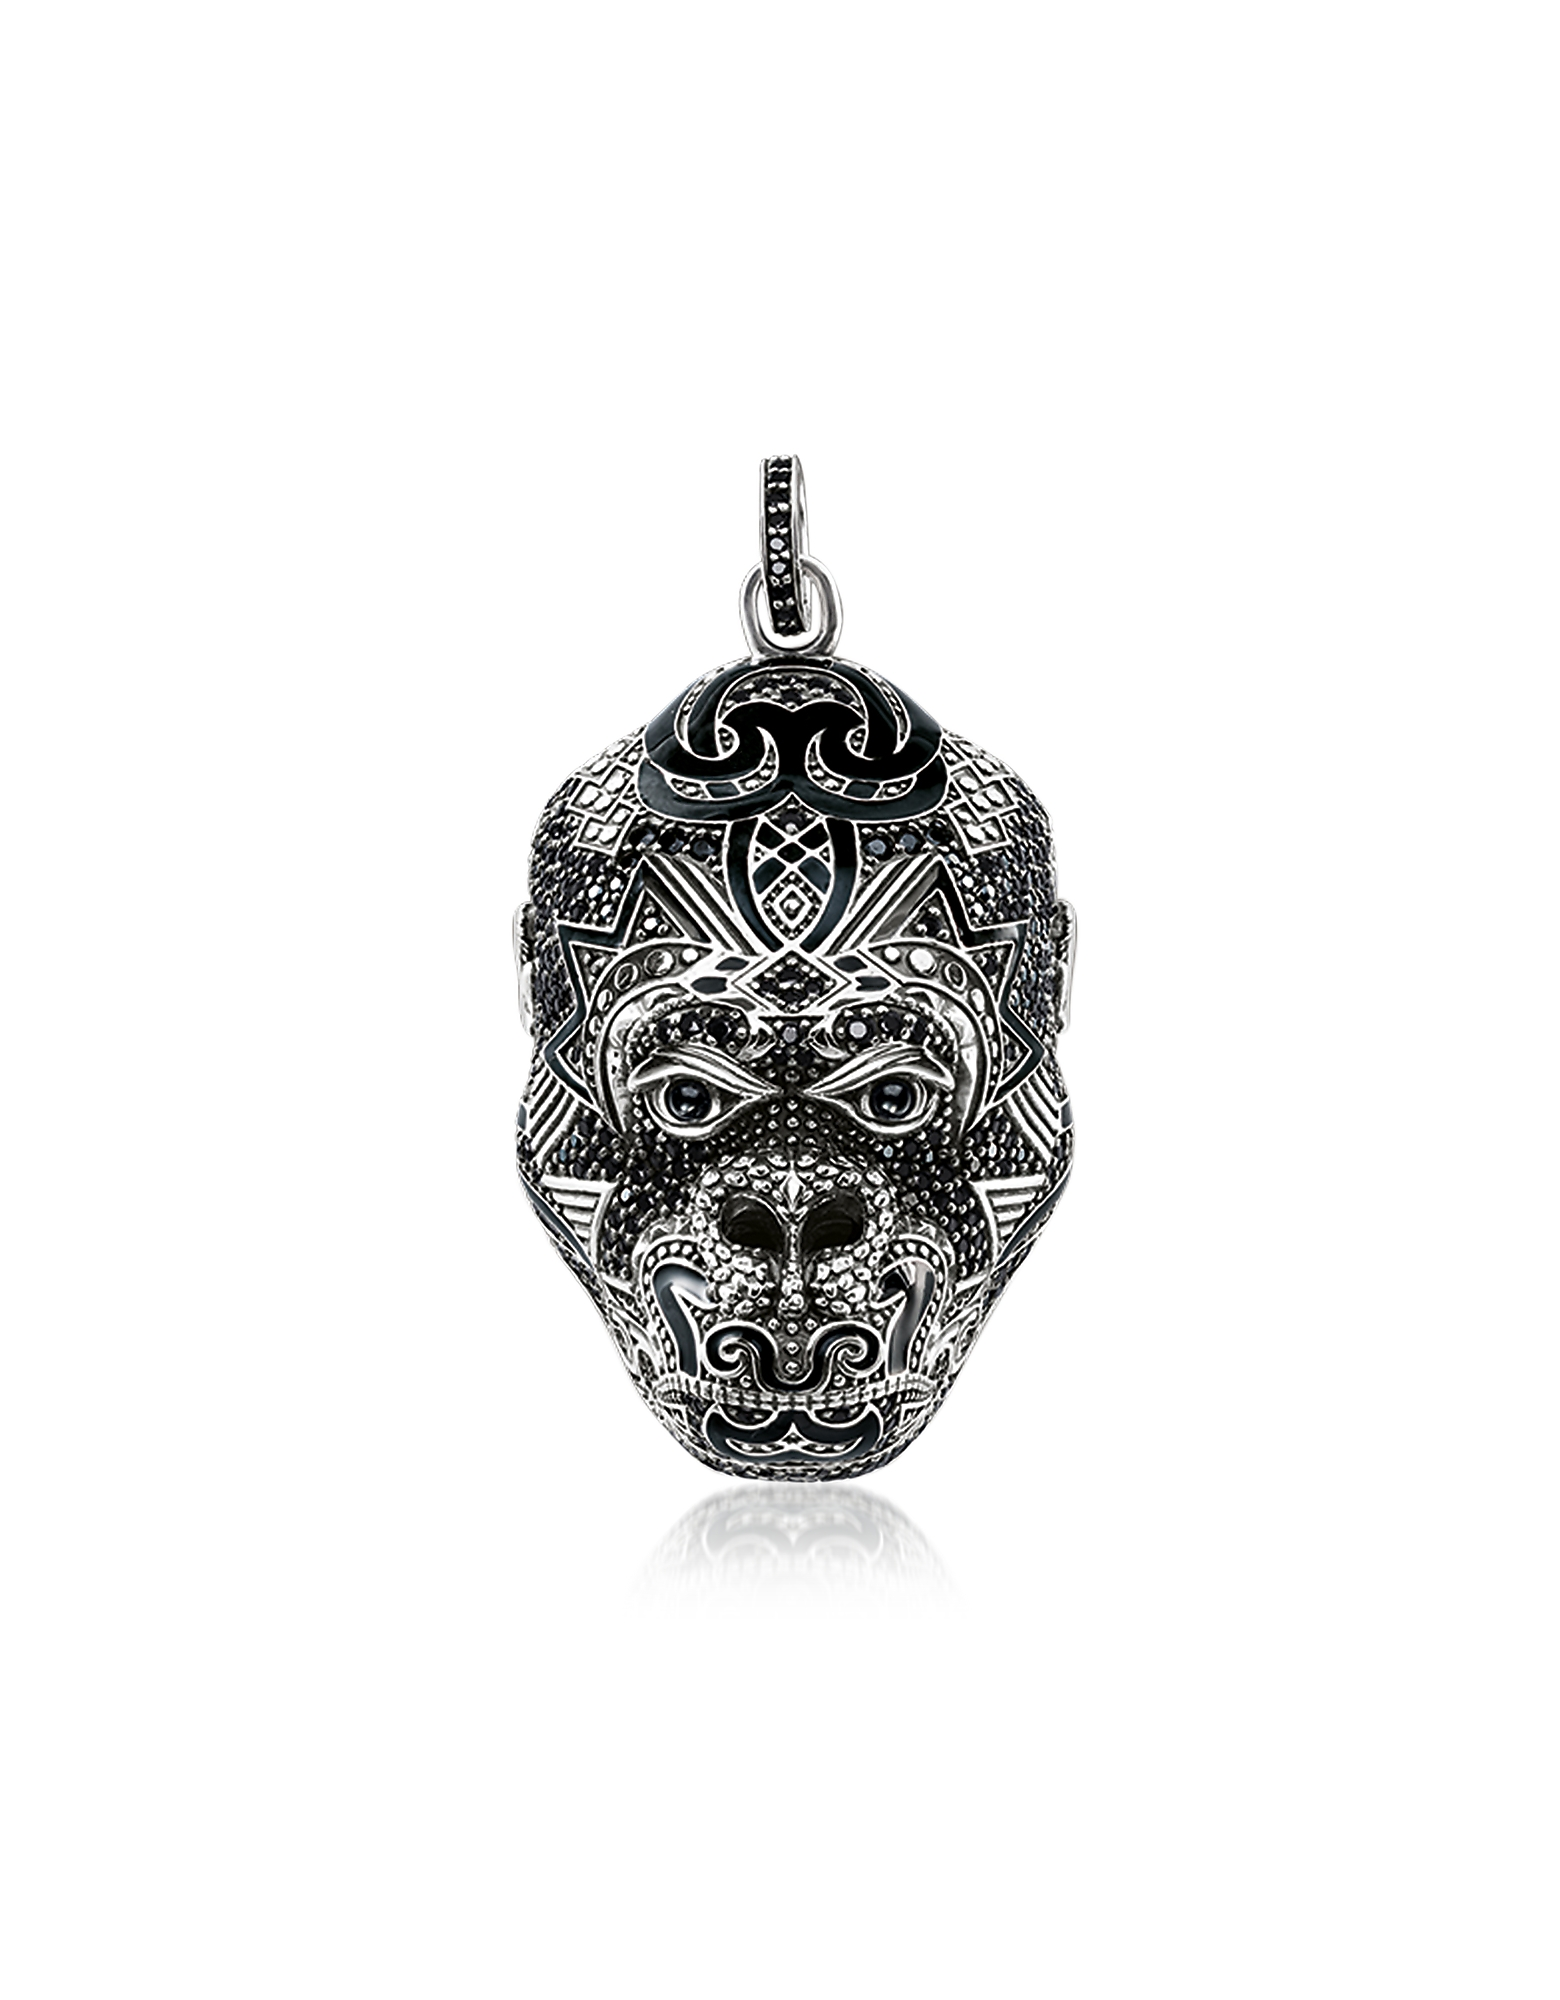 Blackened Sterling Silver Monkey God Pendant w/Black Zirconia and Onyx